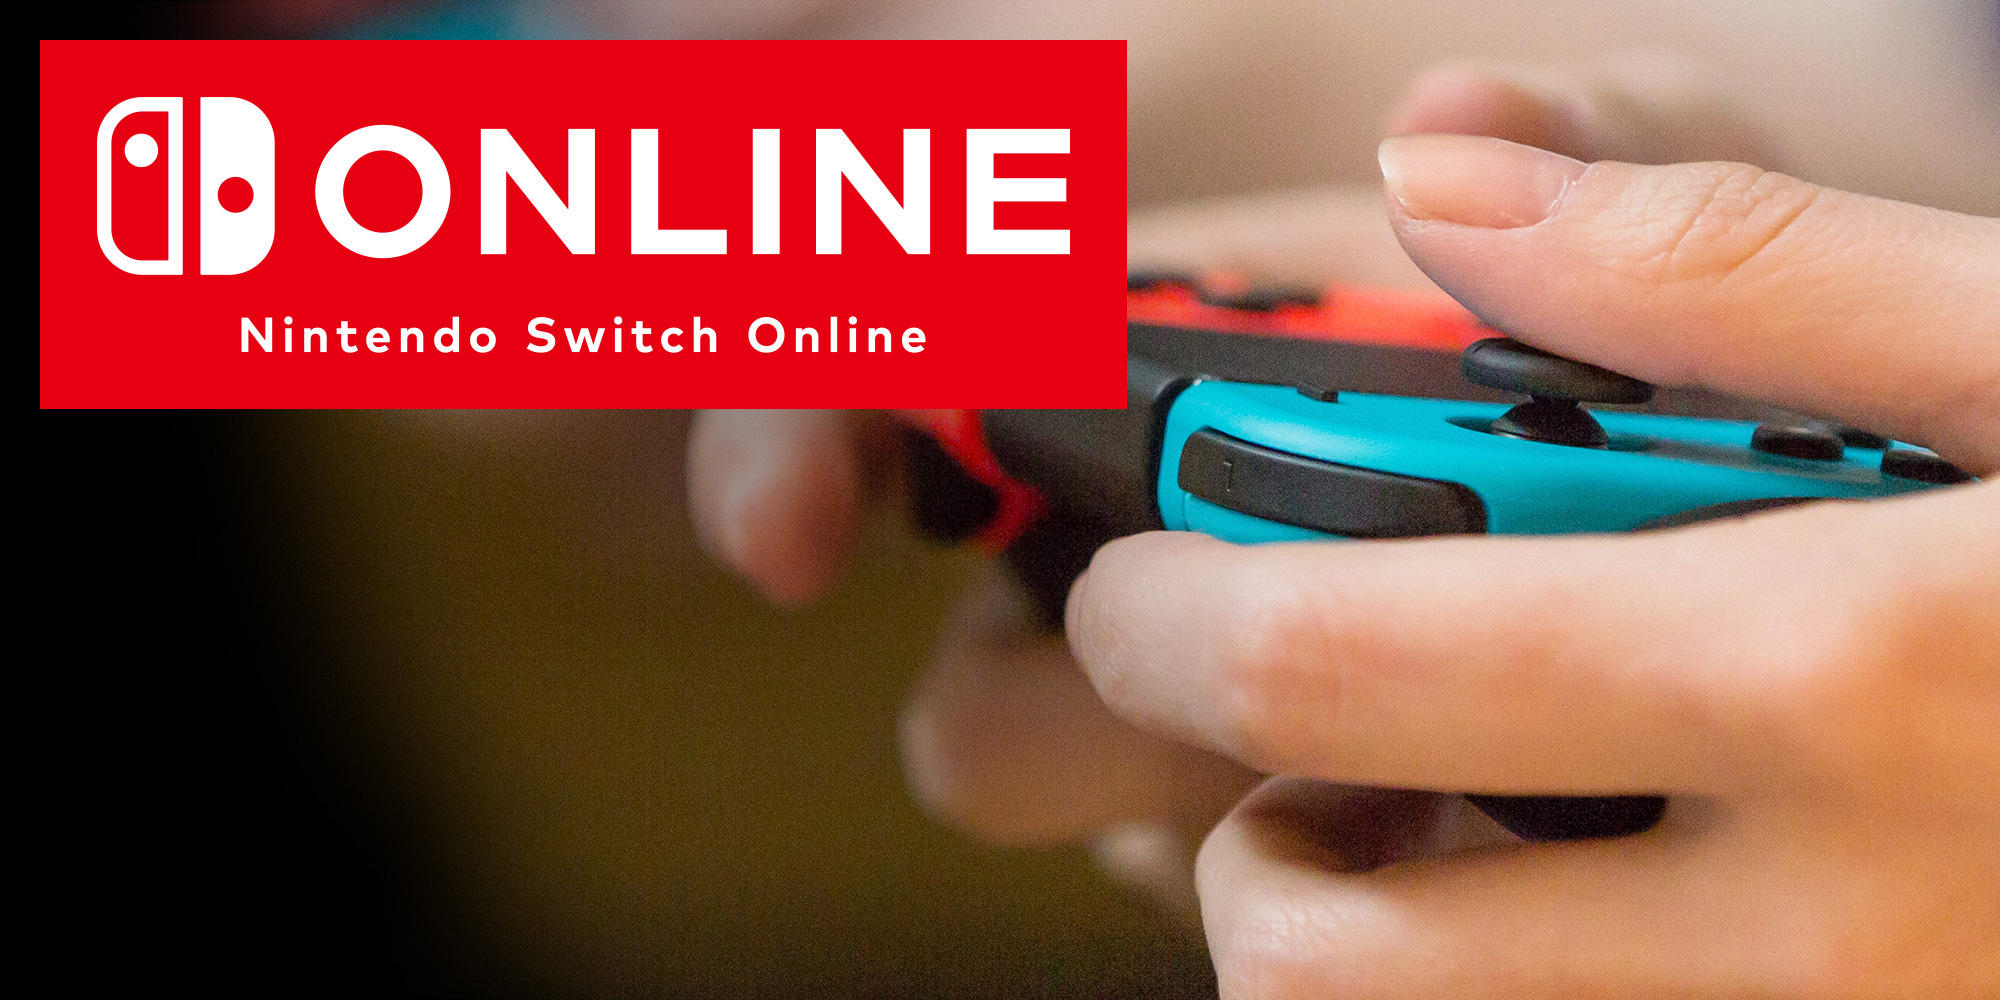 Nintendo requires Switch Online users to sign-in weekly to have uninterrupted service